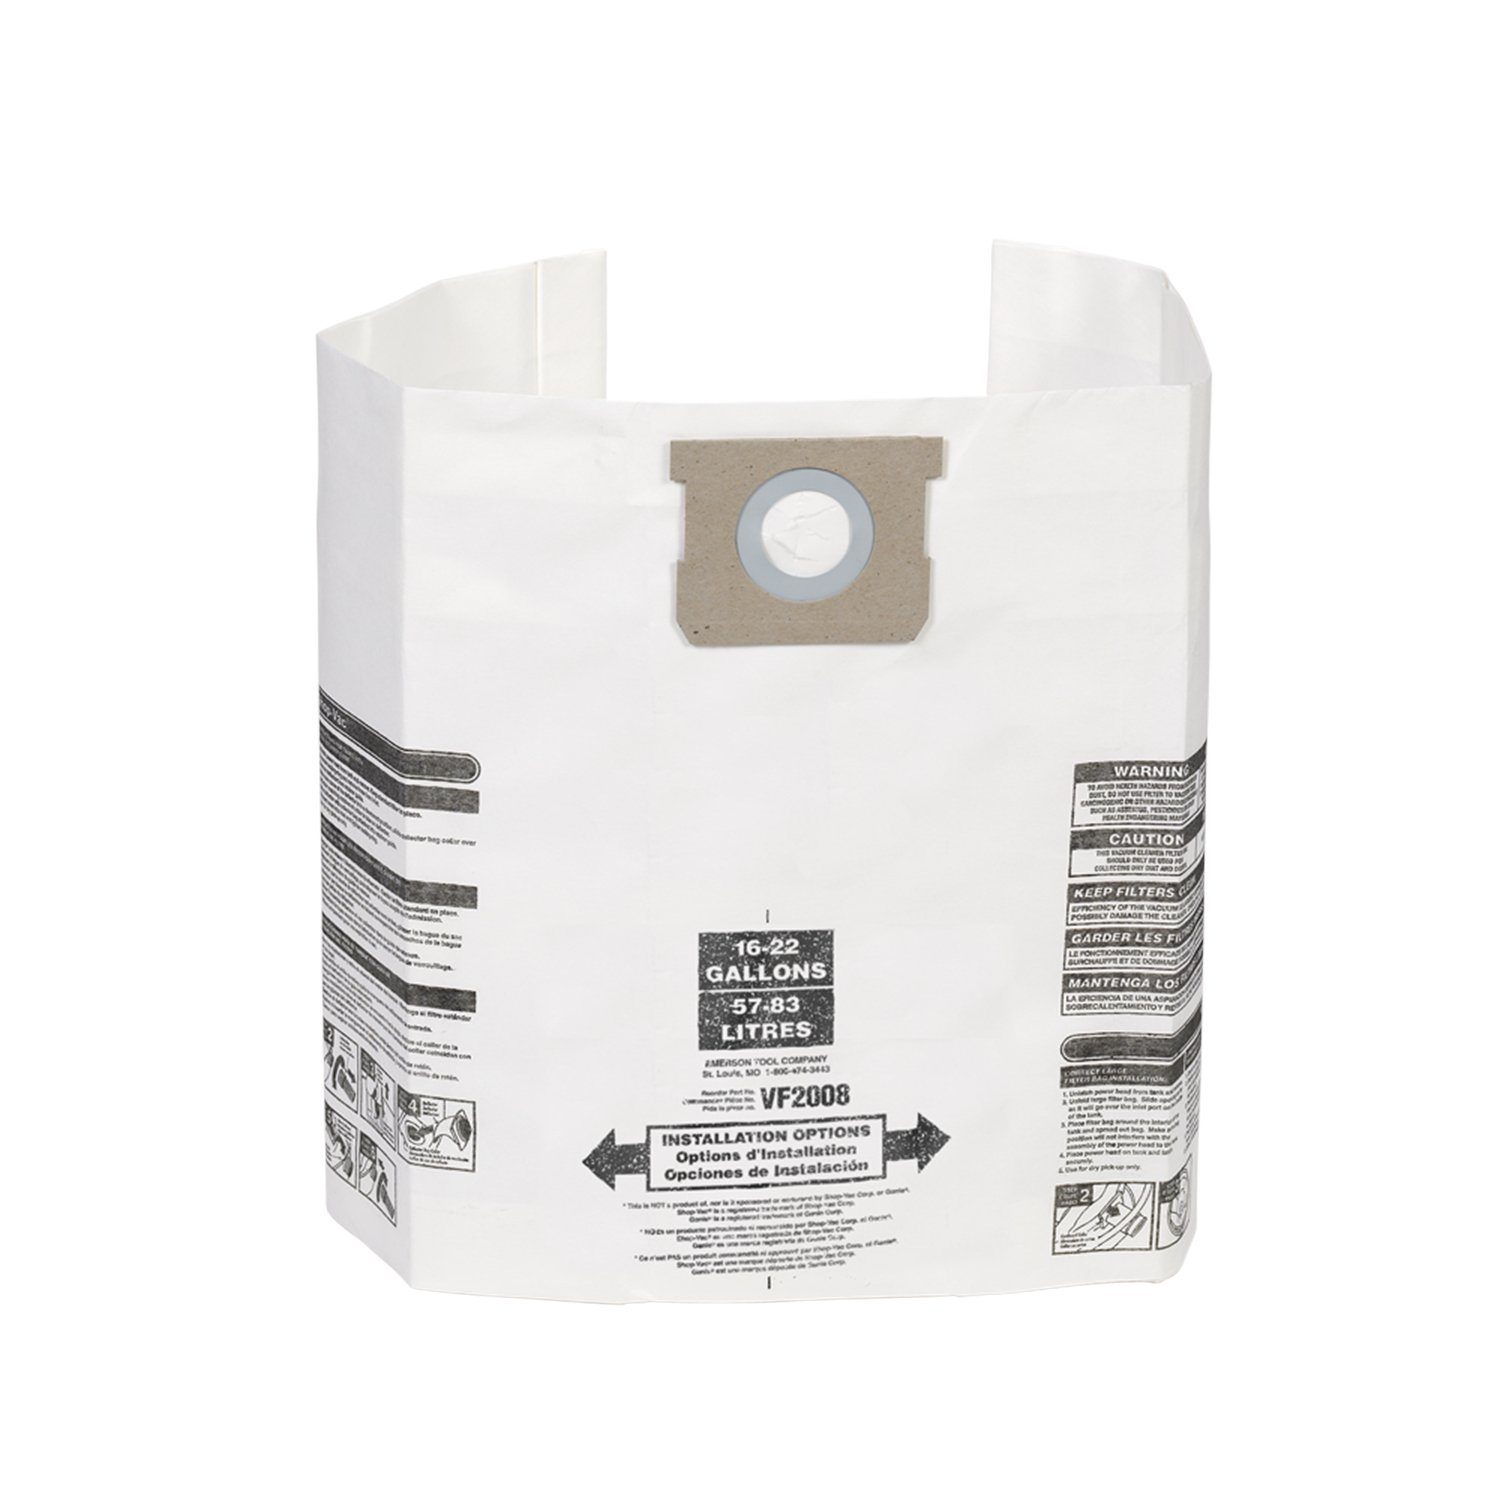 Multi-Fit Wet Dry Vacuum Bags VF2008 General Dust Filter Bag (3 Shop Vacuum Bags), Bag Filter For Most 15-Gallon To 22-Gallon Shop-Vac, Genie Shop Vacuum Cleaners Emerson Tool Company